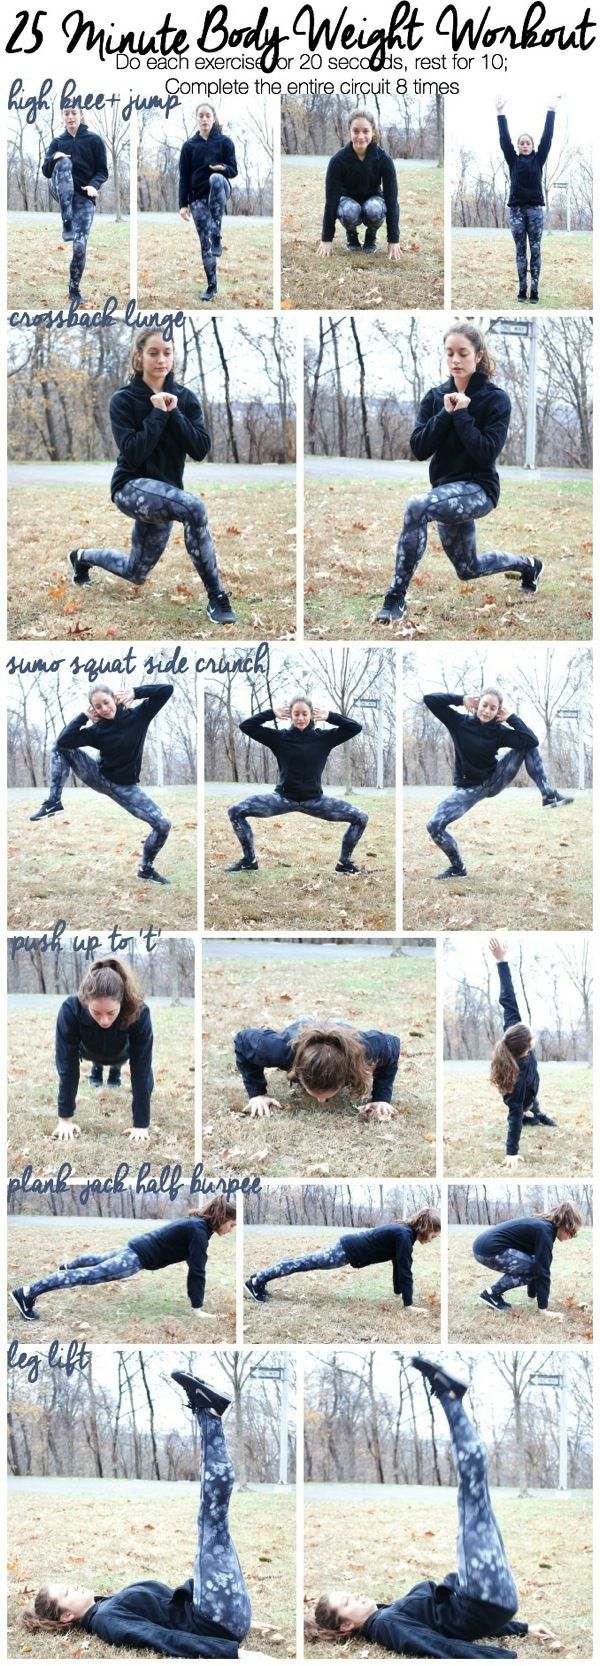 25 Minute Body Weight Workout | No equipment needed to complete these exercises--do this workout at home or at the gym! #workout